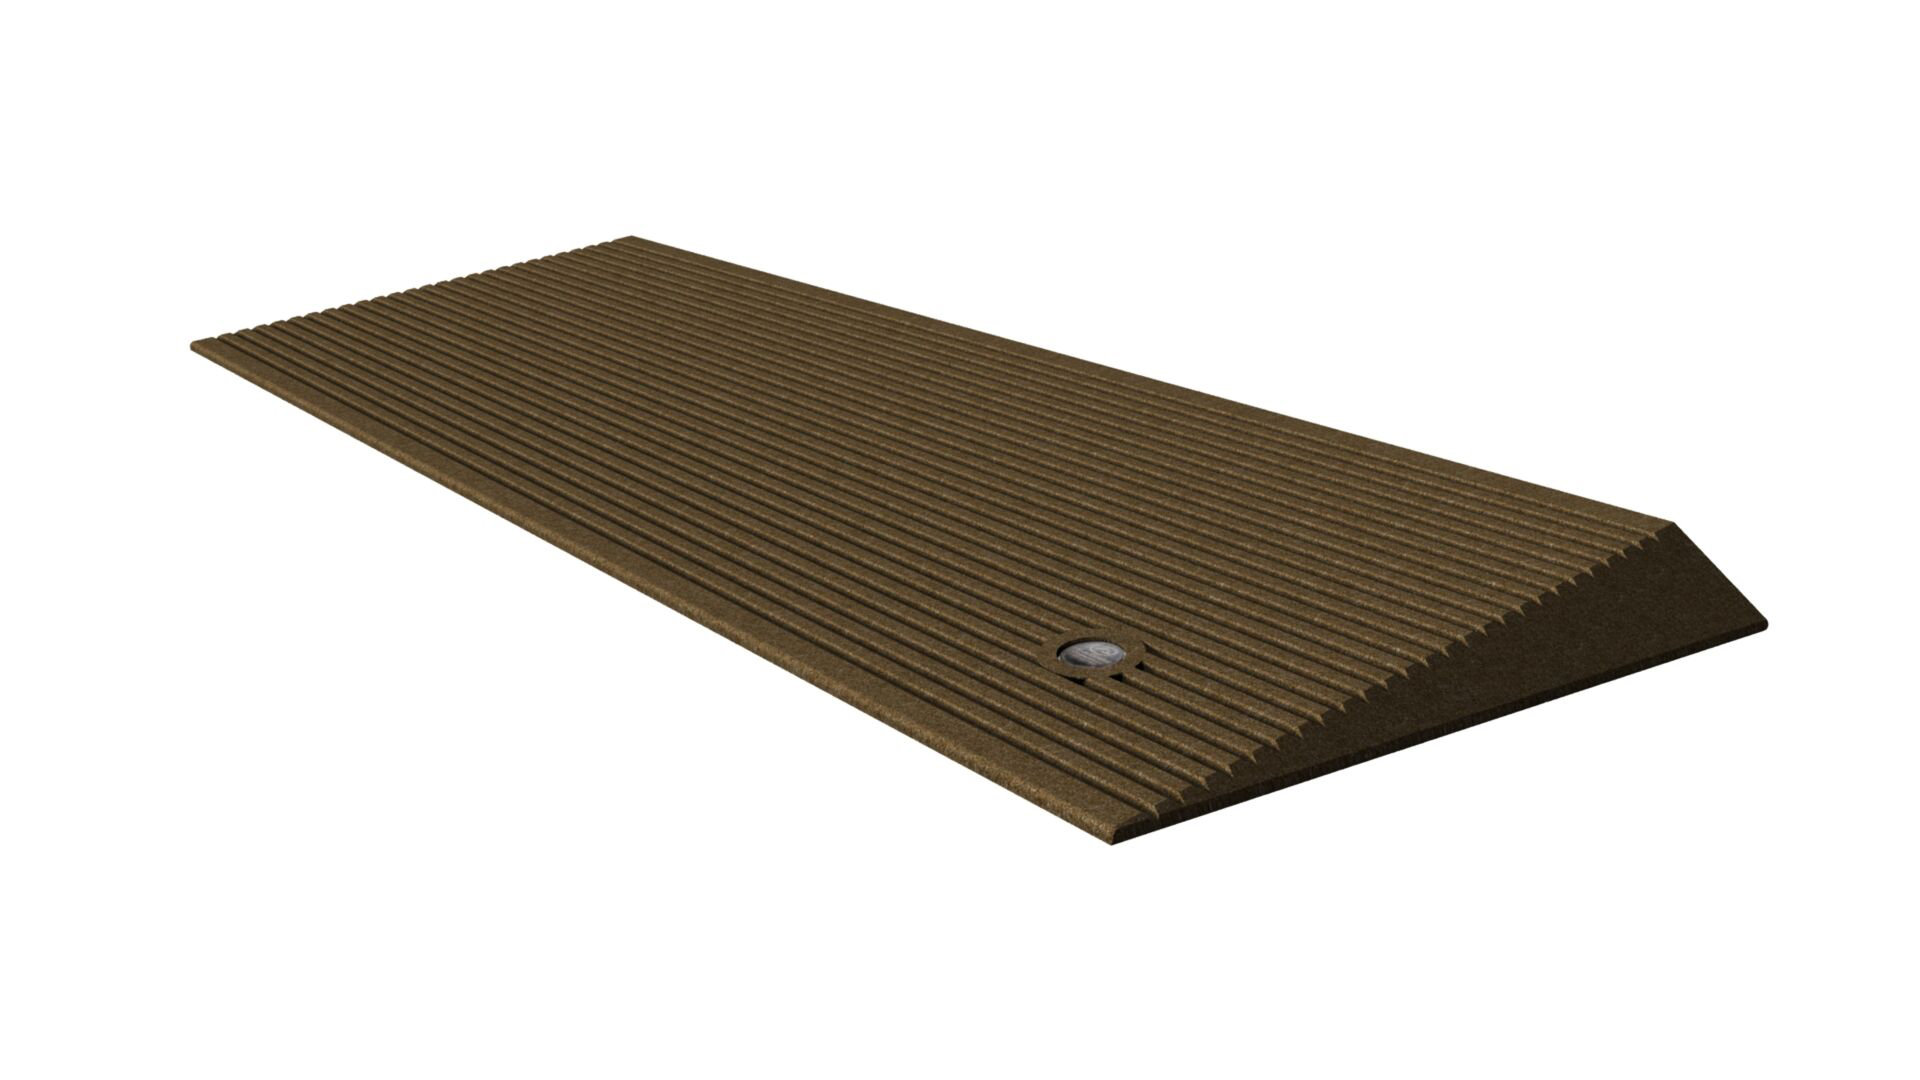 TRANSITIONS® Angled Entry Mat - Picture 07